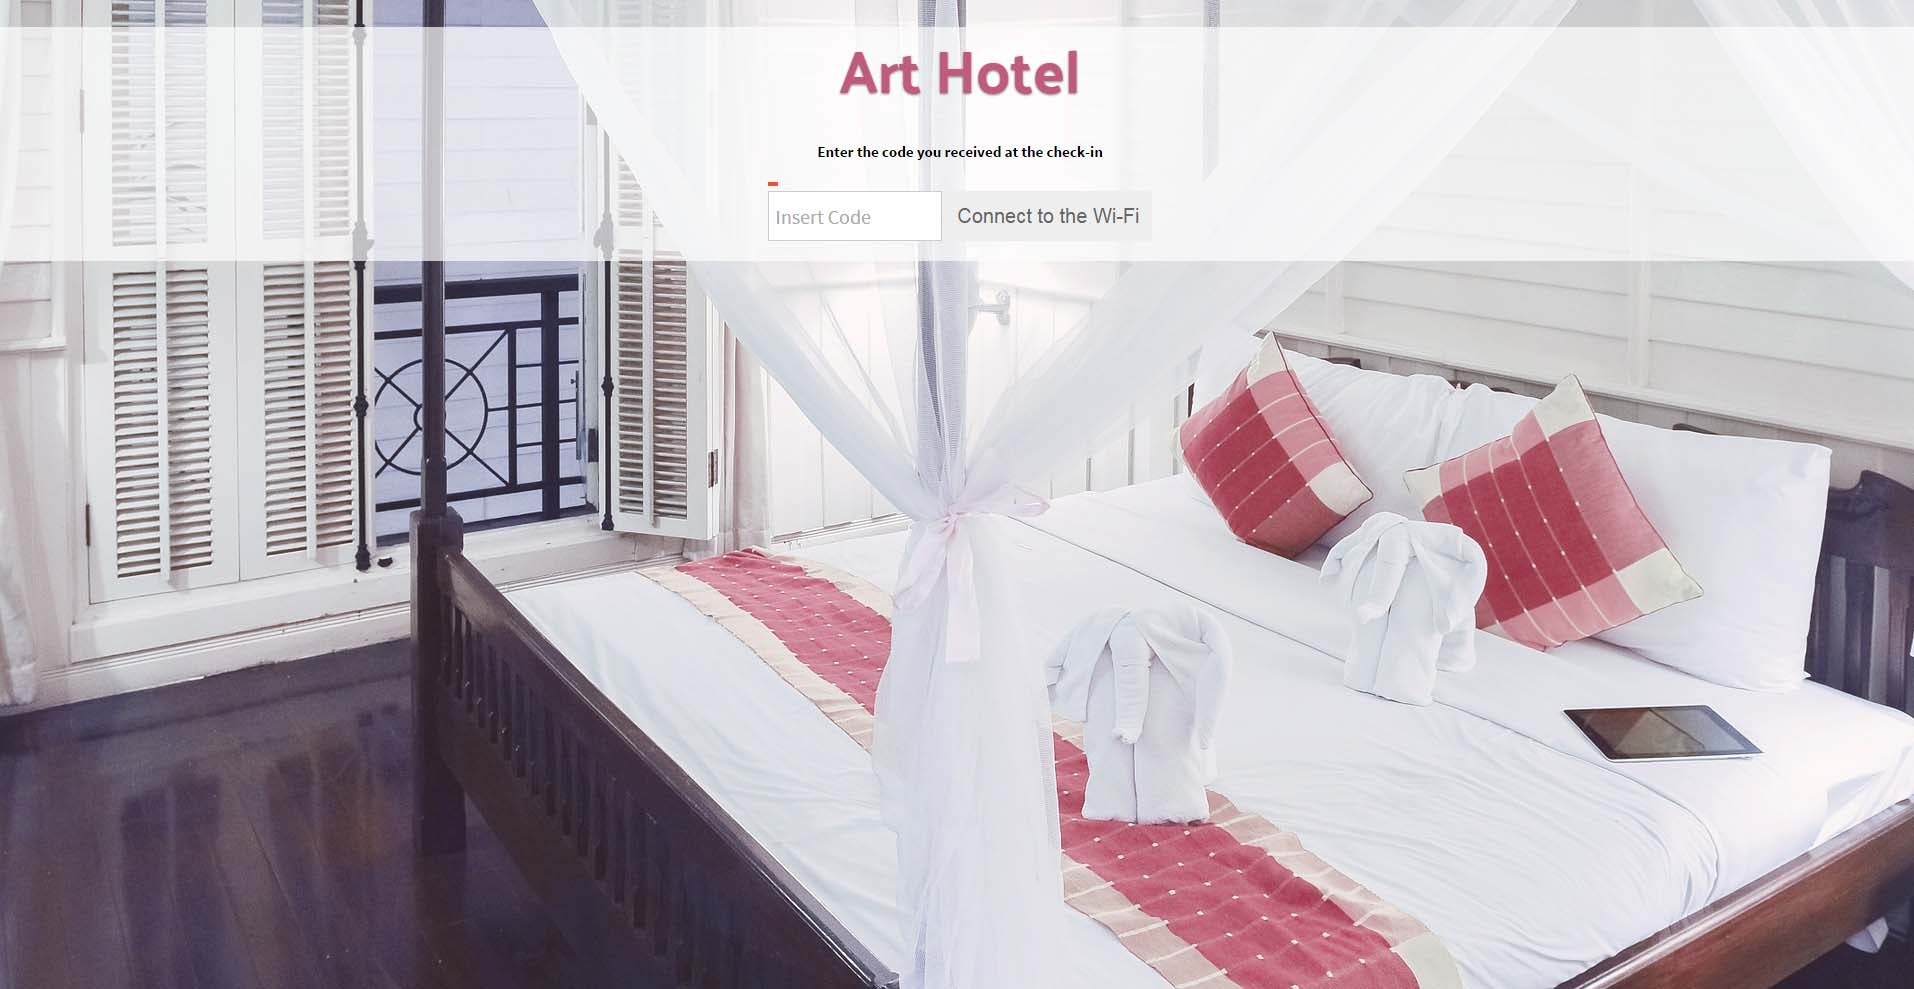 WiFi for Art Hotel